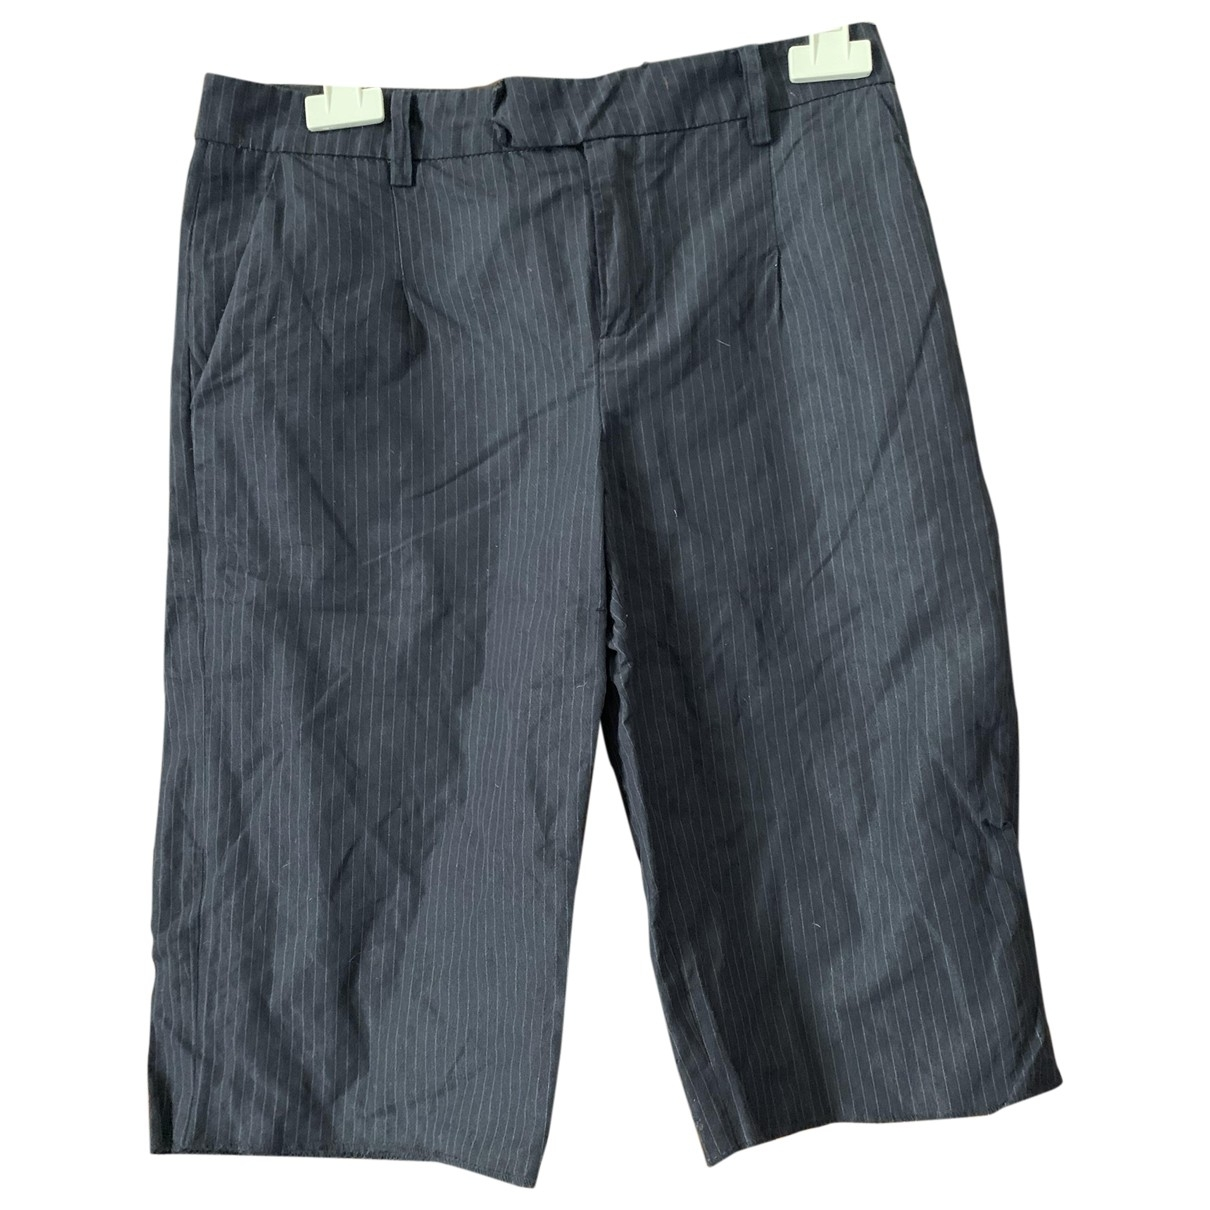 Dondup \N Black Cotton Shorts for Kids 14 years - S FR